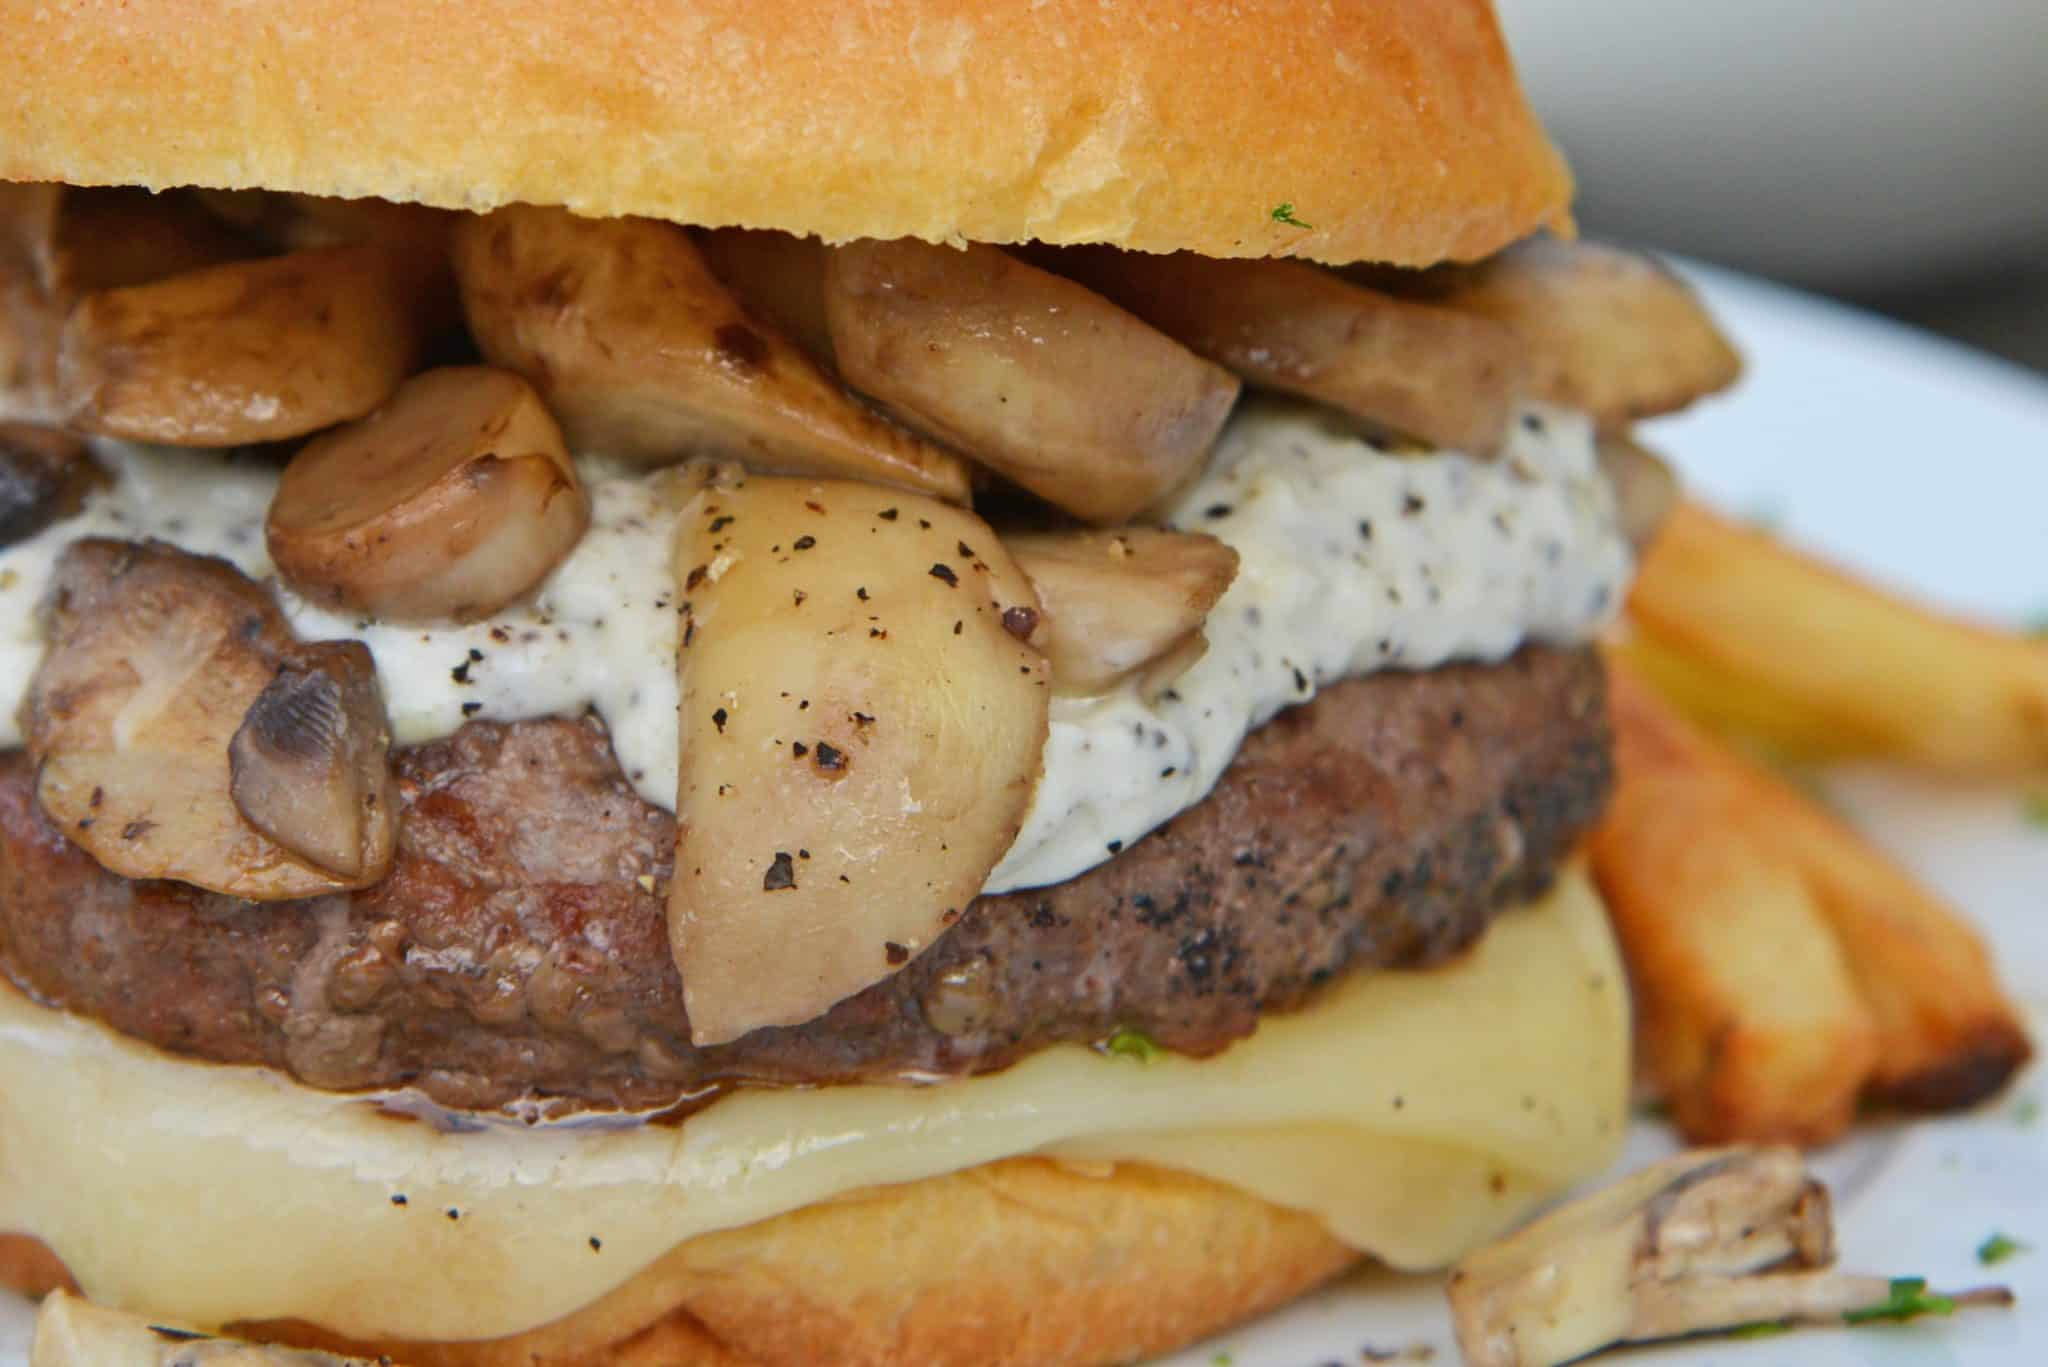 A Garlic Truffle Burger is the perfect way to make a gourmet burger at home. Truffle Aioli, sautéed mushrooms, Swiss cheese and a juicy burger patty on a buttery brioche roll. #gourmetburgers #truffleburgers www.savoryexperiments.com